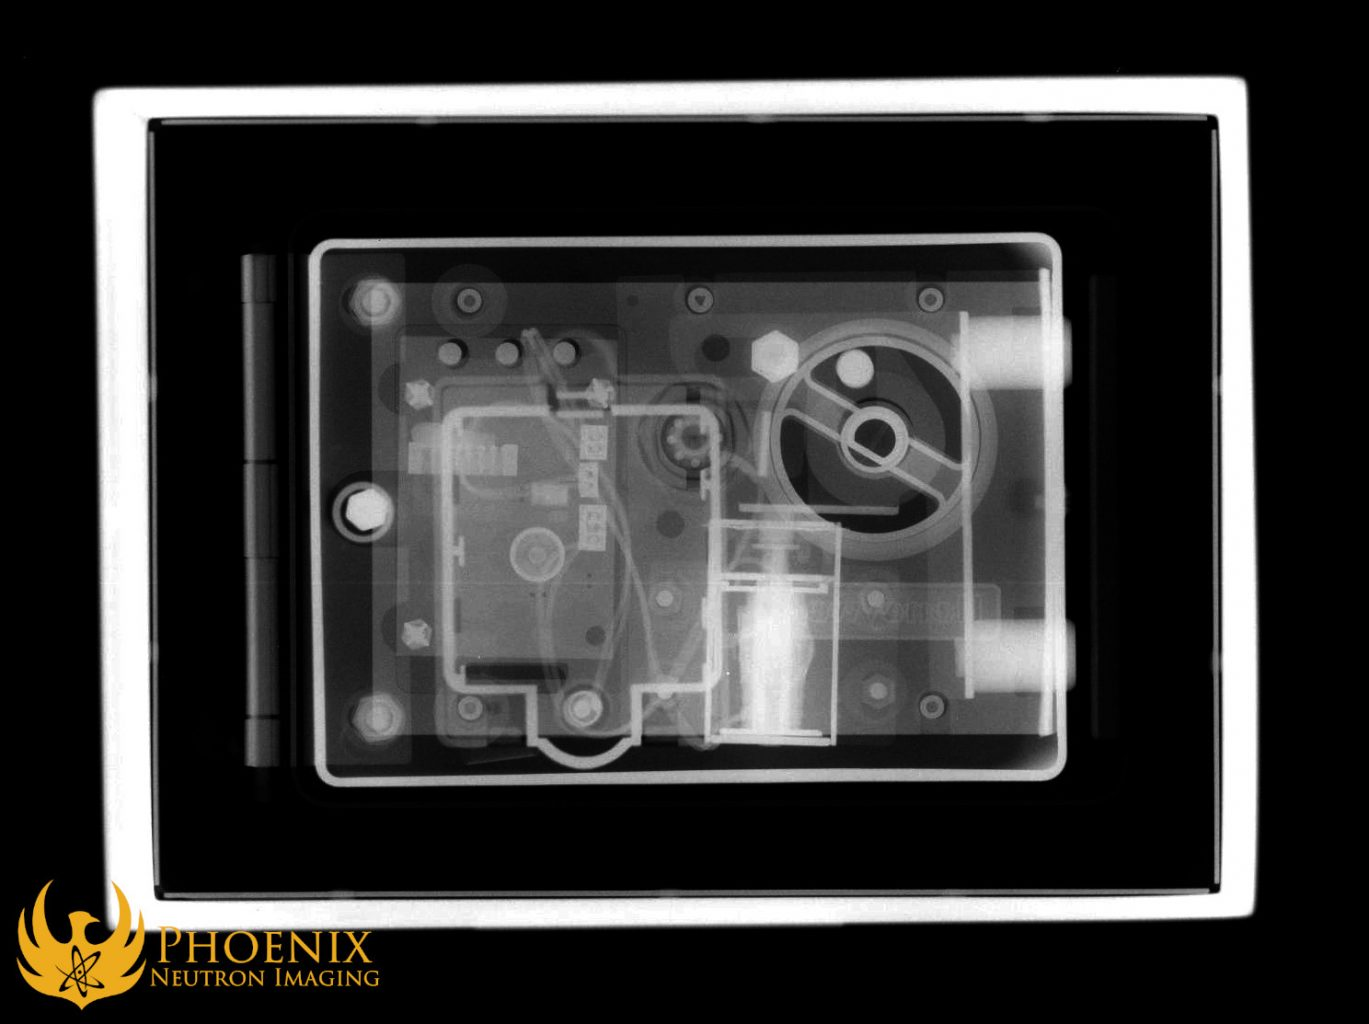 Neutron image: A Honeywell safe captured in a neutron radiograph. The neutron radiation captures the plastic elements of the safe on film much more clearly than the X-rays do.